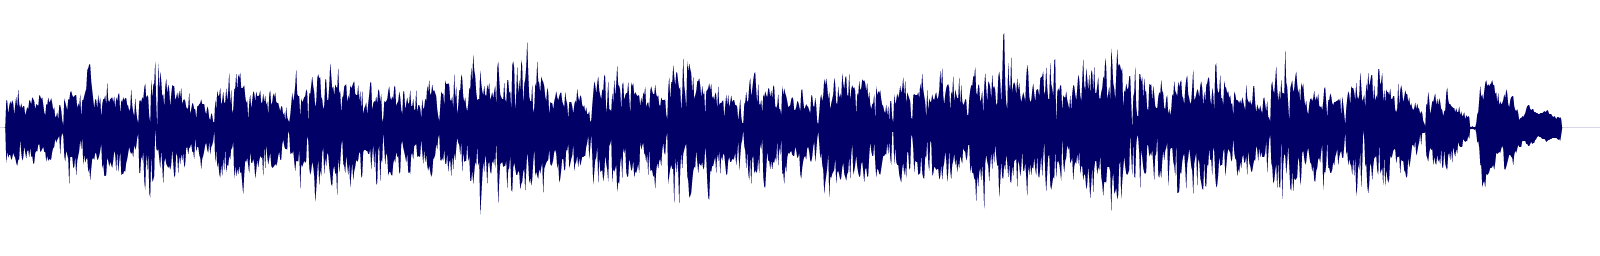 waveform of track #89599